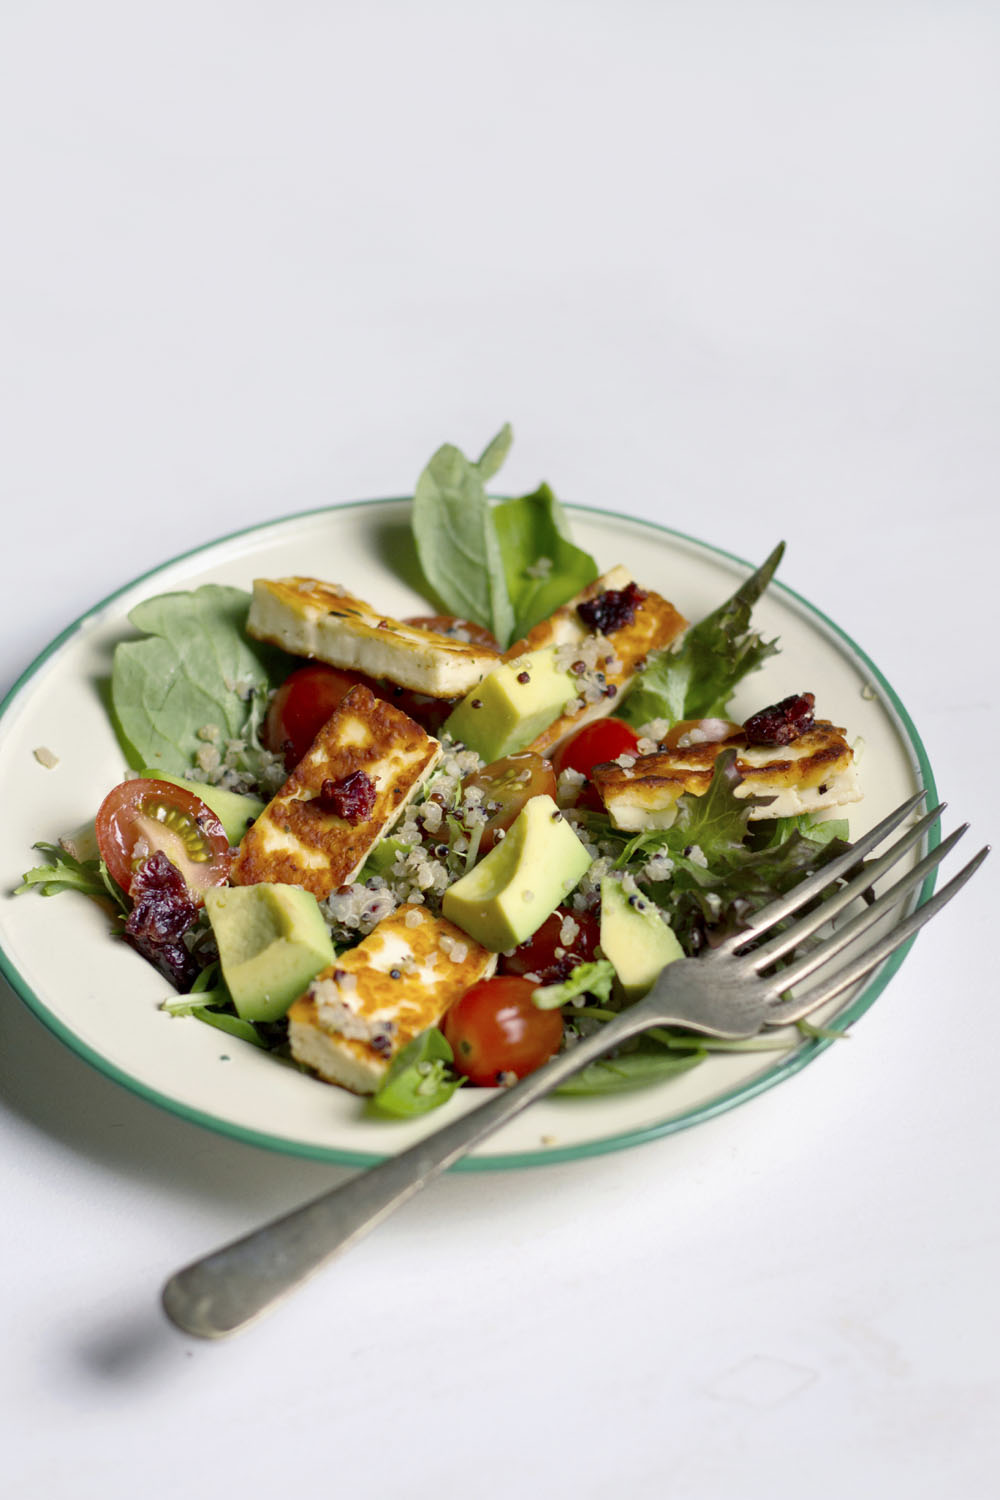 Quinoa Salad with Grilled Haloumi Cheese